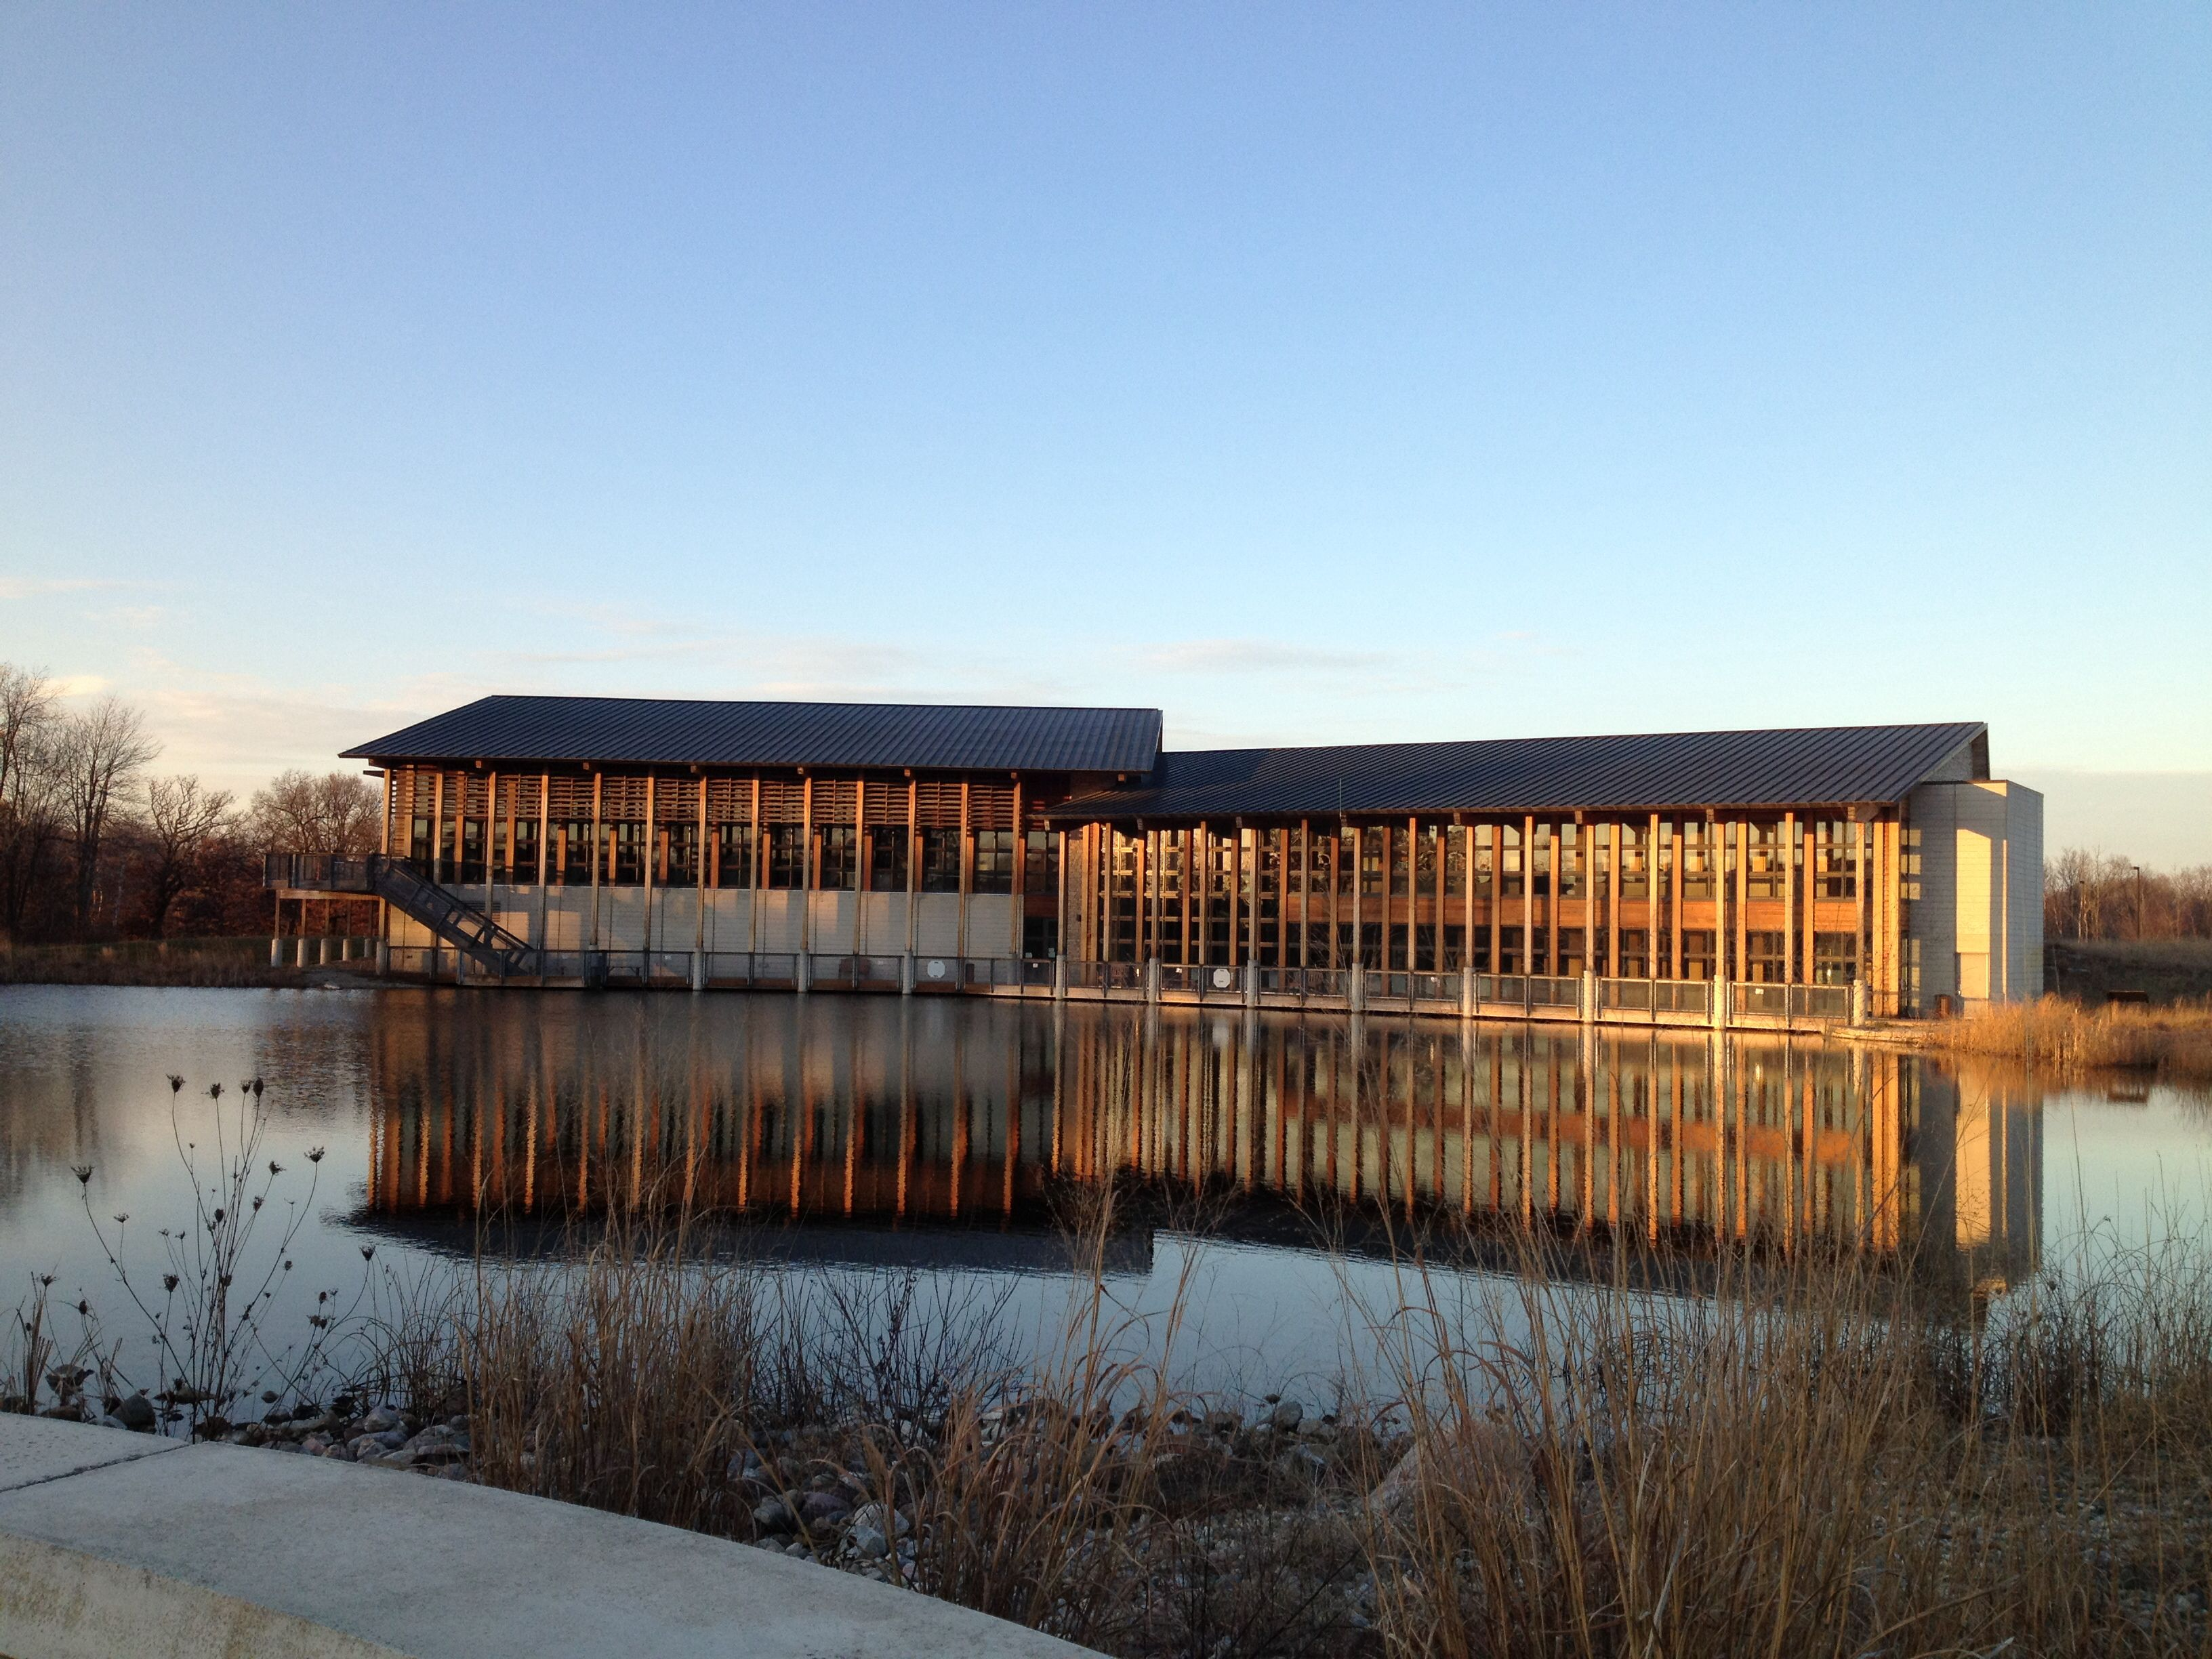 Our Venue The Environmental Discovery Center At Indian Springs Metropark In White Lake Mi